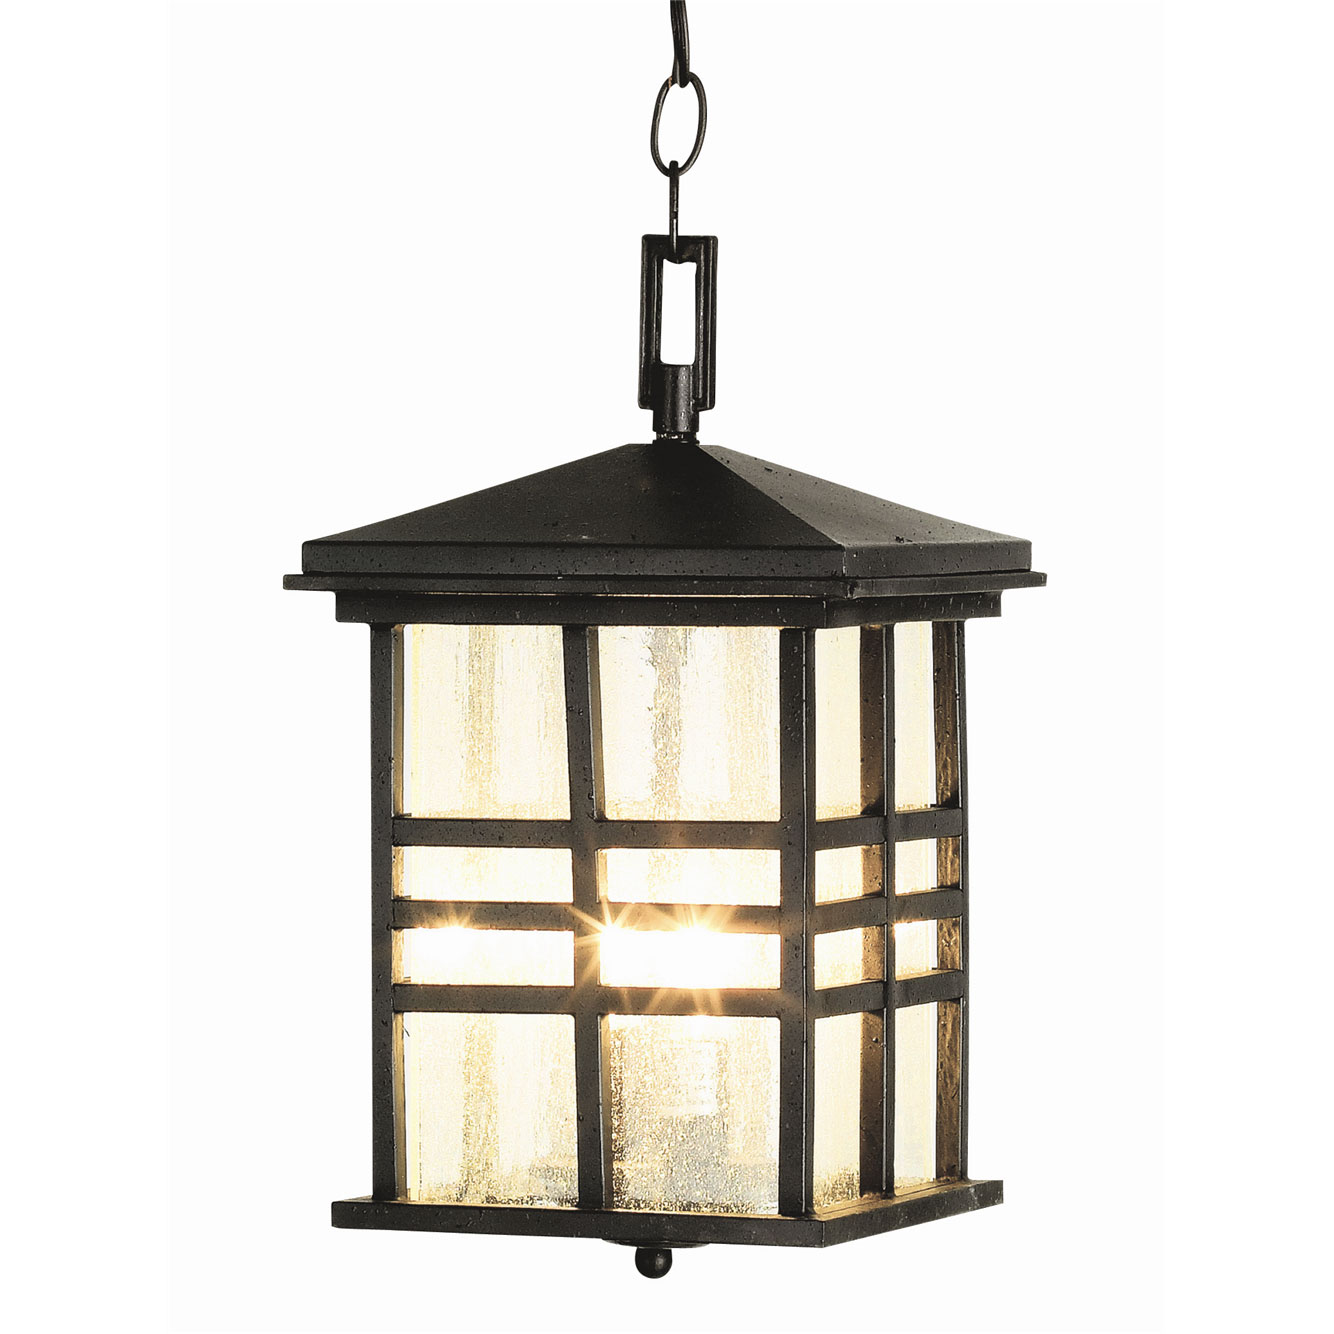 Craftsman outdoor hanging lantern by trans globe 4638 bk rustic craftsman outdoor hanging lantern by trans globe 4638 bk mozeypictures Images